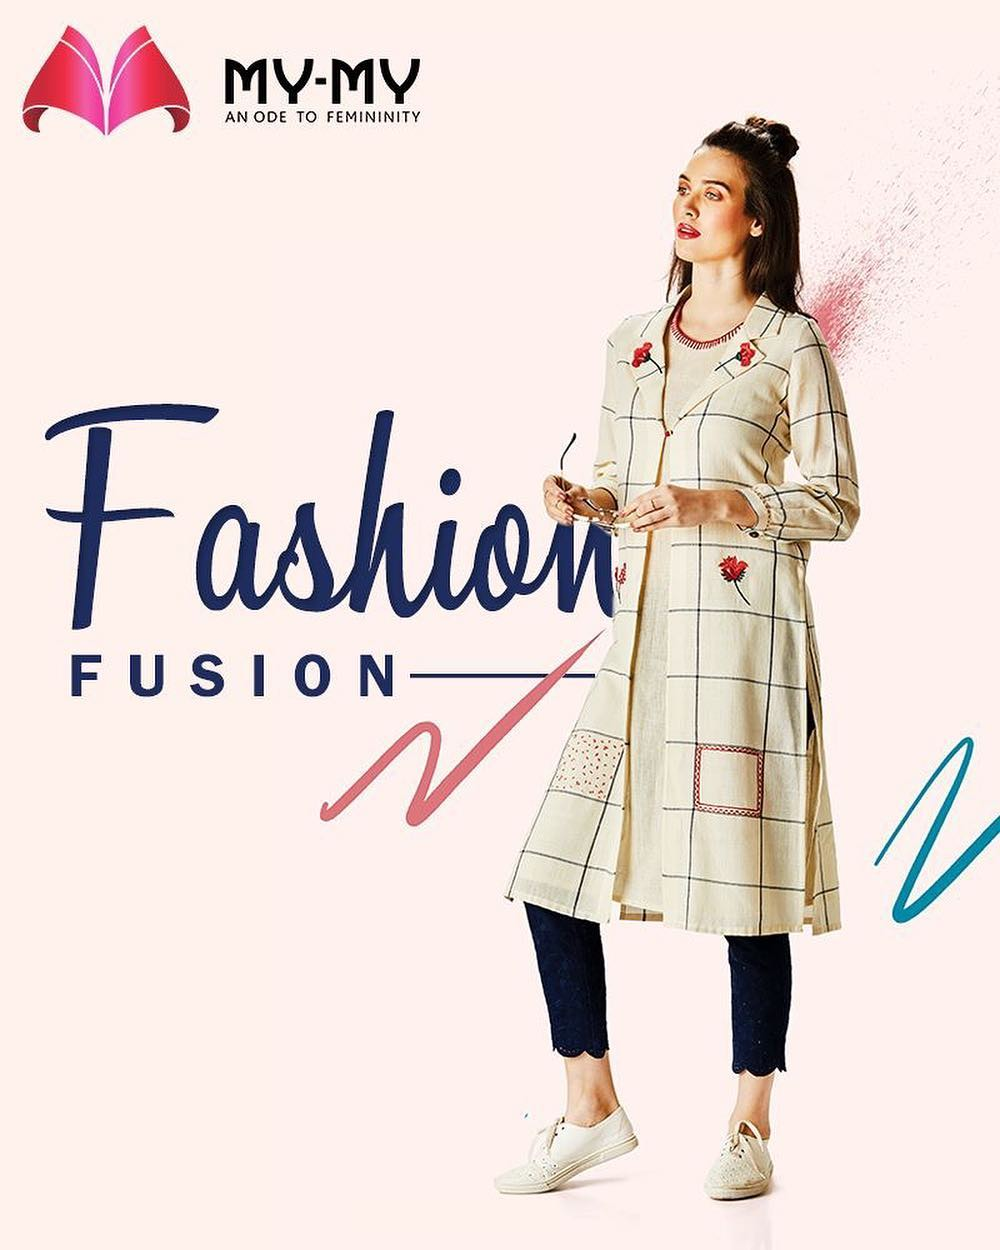 Wear your boss babe attitude on! The best fashion fusion summer outfits now at My-My!  #SummerWardrobe #MyMy #MyMyAhmedabad #Fashion #Ahmedabad